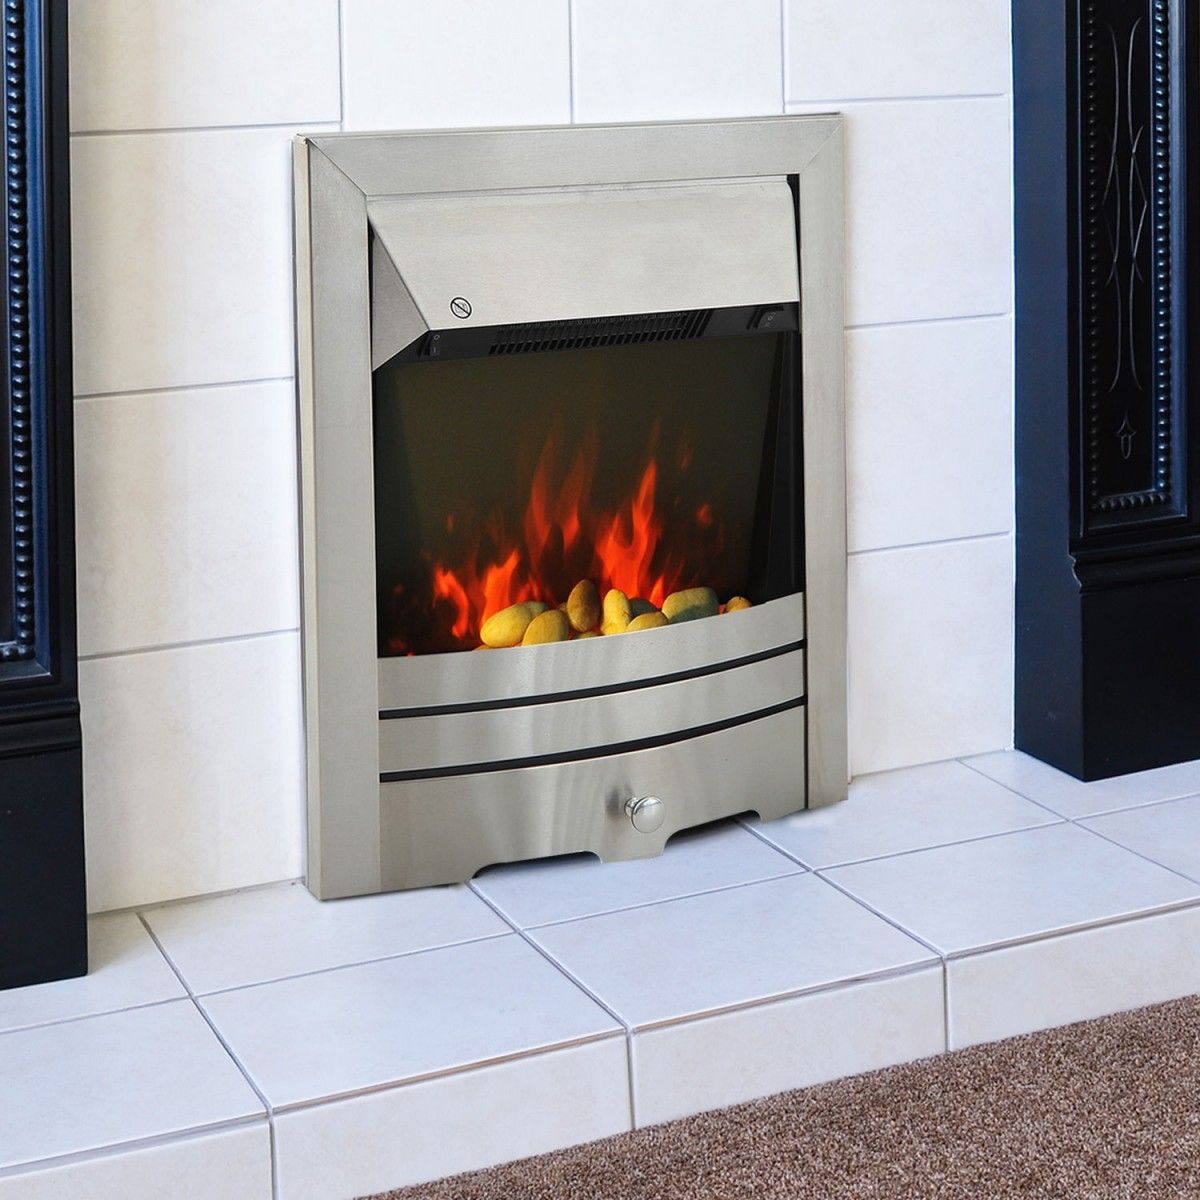 2kw electric stainless steel flame effect fireplace